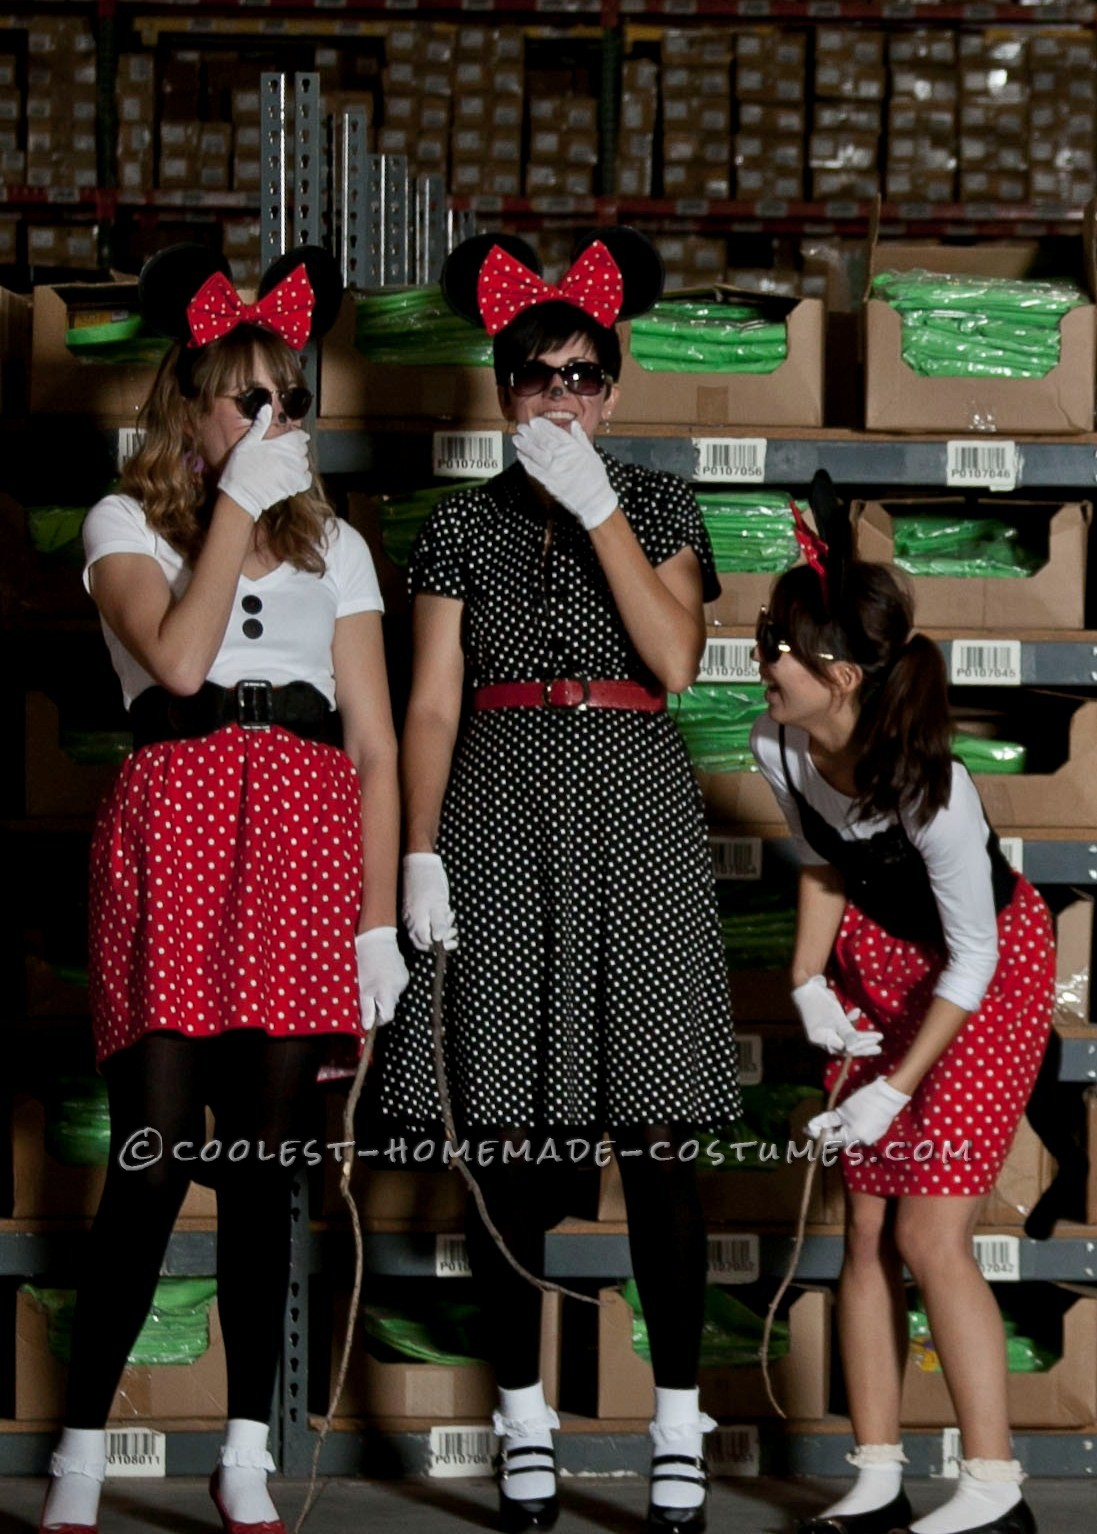 The Three Blind Minnie Mice costume idea was for a work custume contest. We wanted to come up with something different and somehow thought of doing t